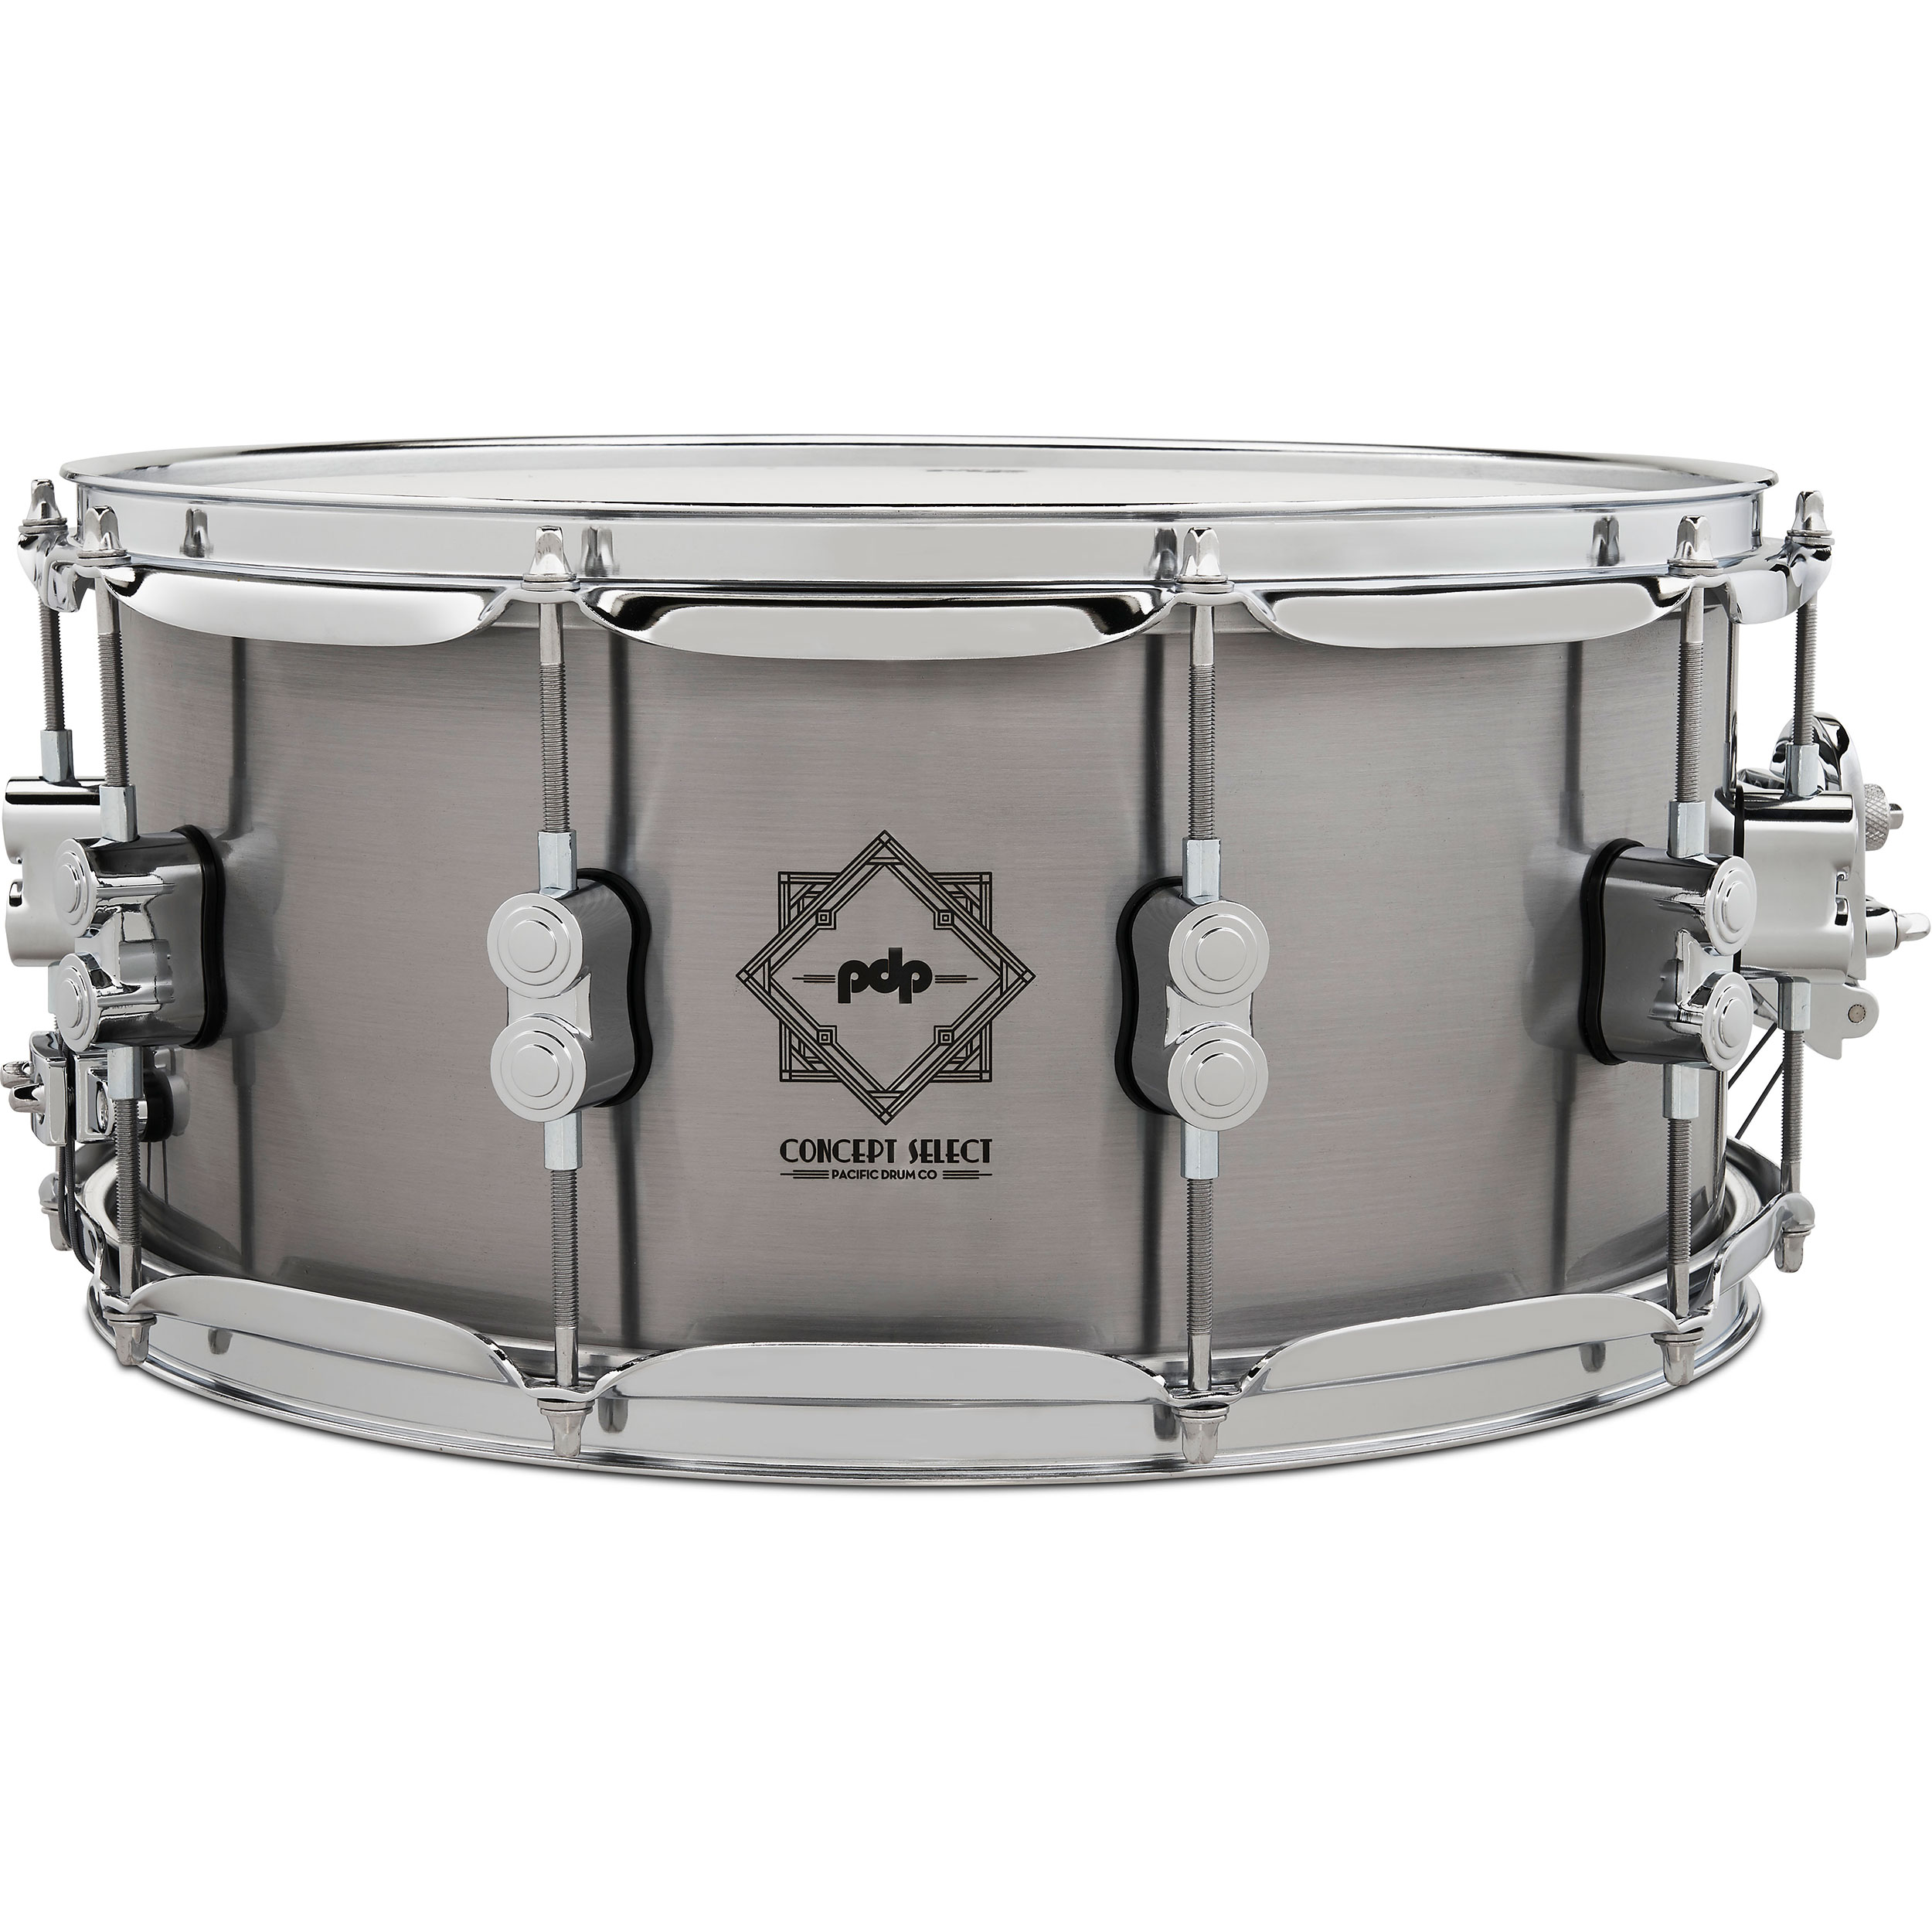 "PDP 6.5"" x 14"" Concept Select 3mm Steel Snare Drum"